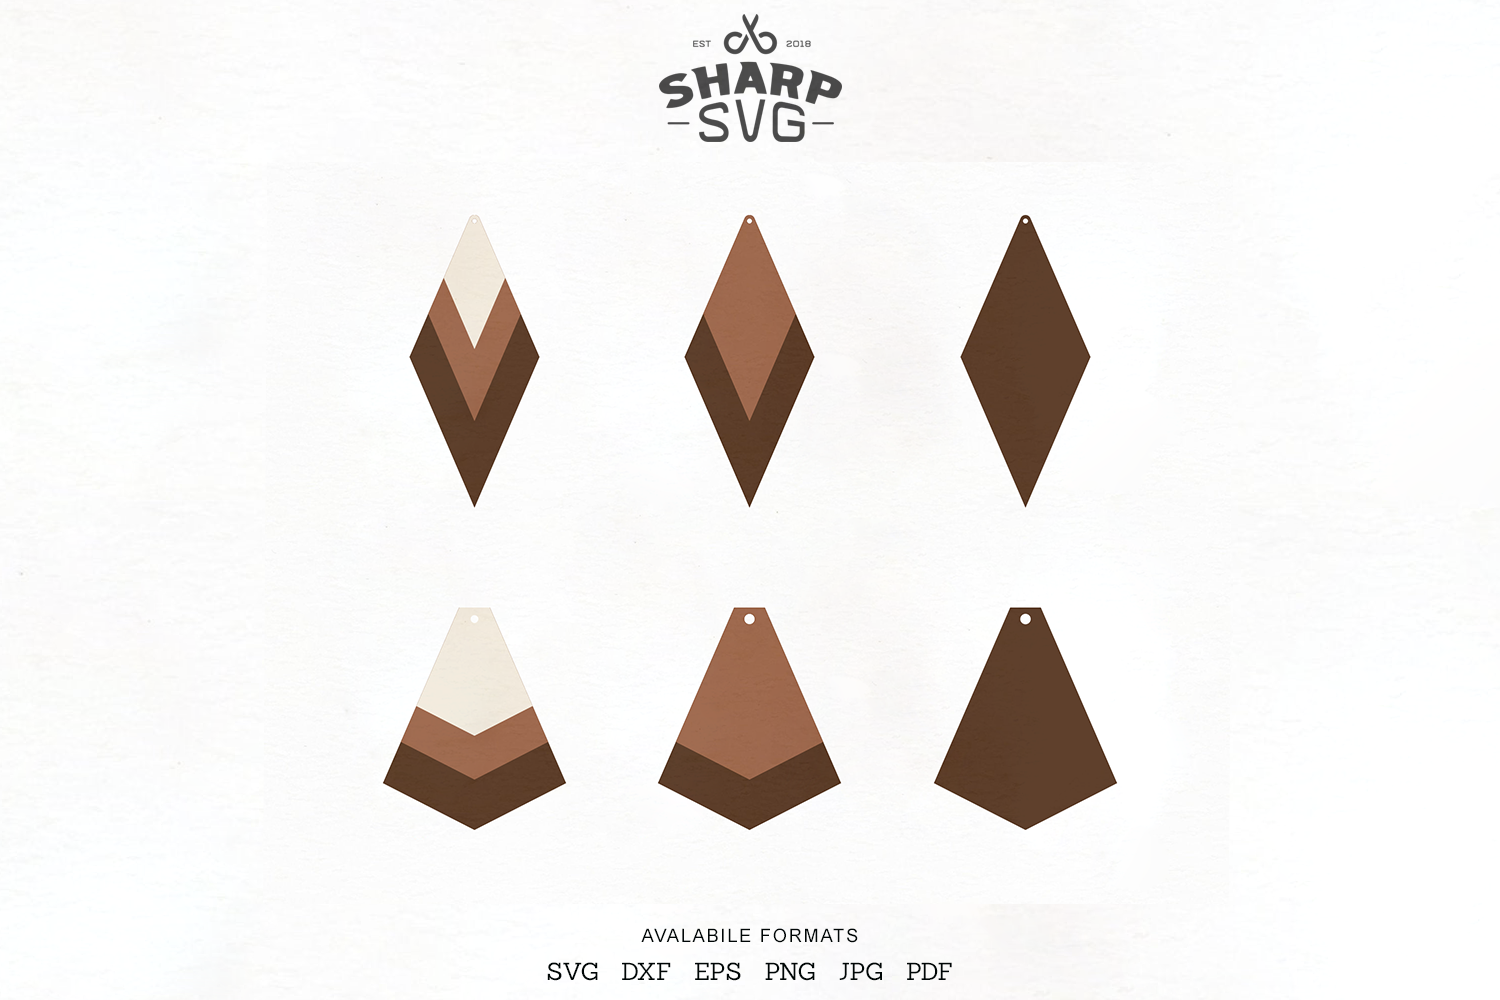 Stacked Earrings Svg Geometric Leather Earrings Templates By